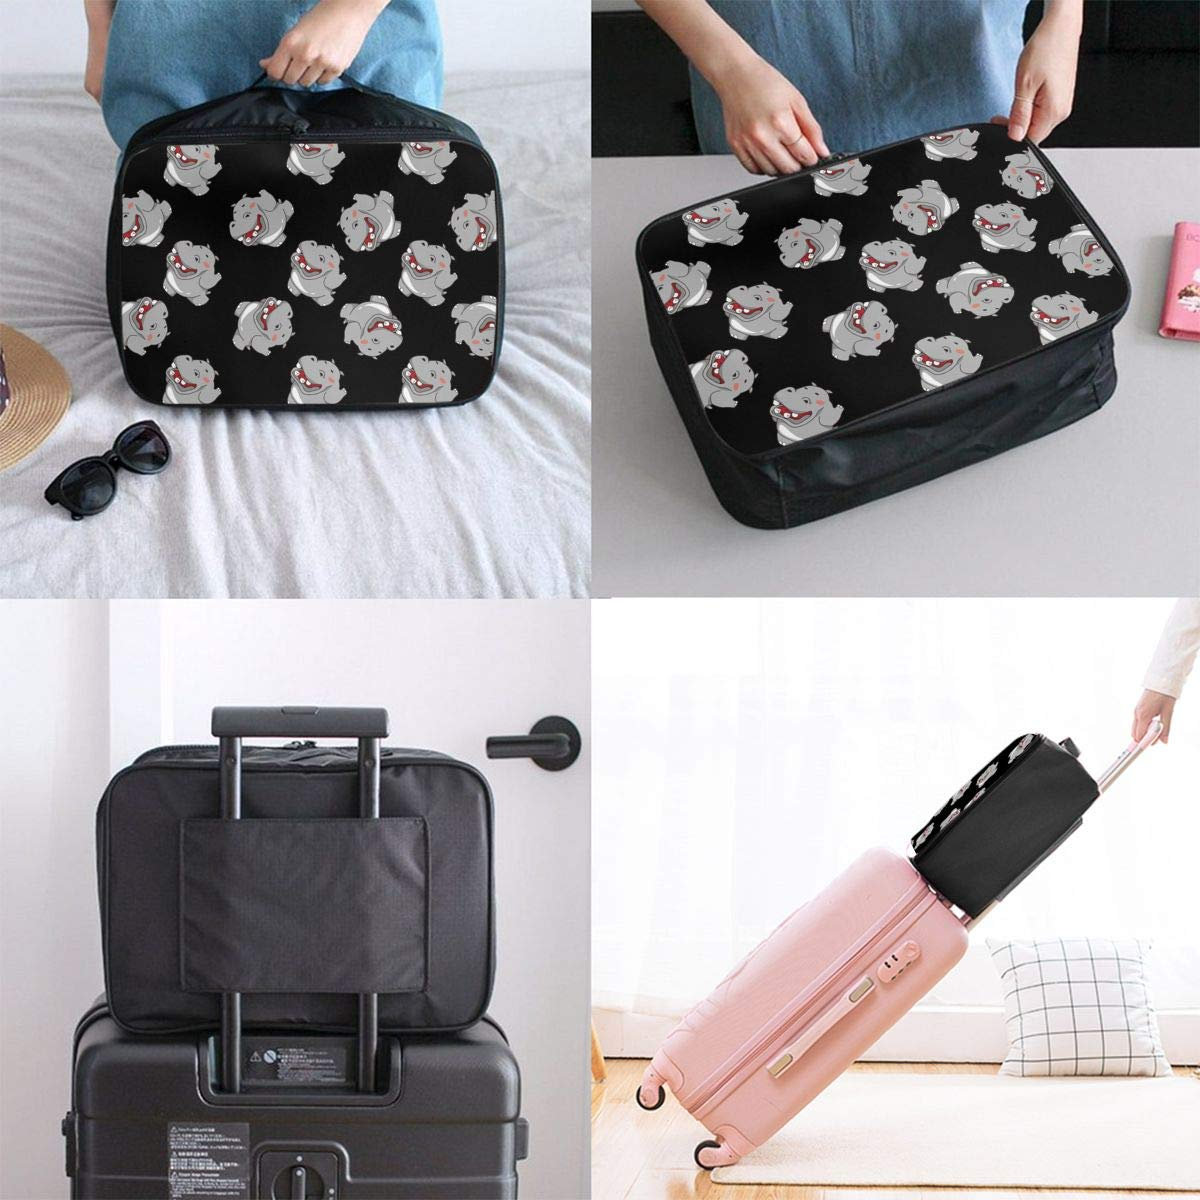 YueLJB Lovely Hippo Lightweight Large Capacity Portable Luggage Bag Travel Duffel Bag Storage Carry Luggage Duffle Tote Bag